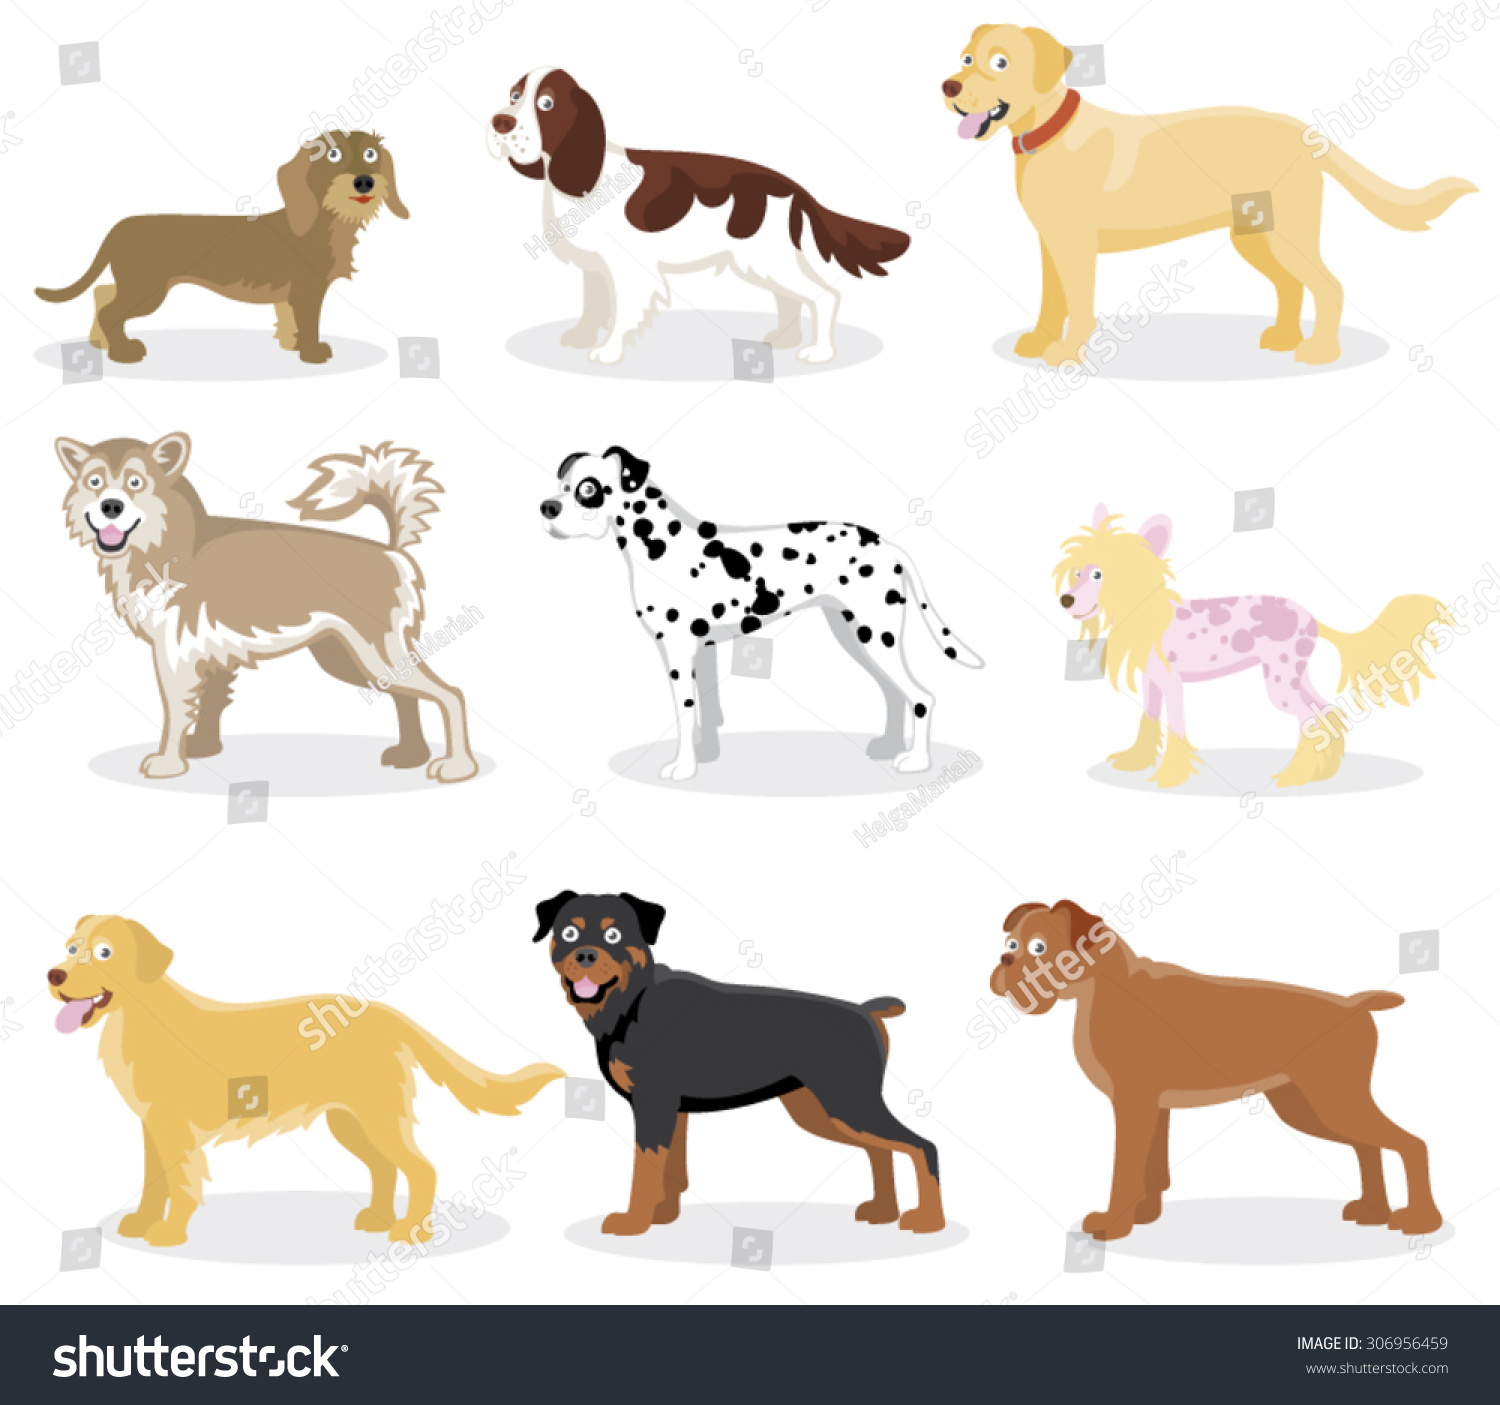 funny cartoon dog various breeds standing stock vector 306956459 shutterstock. Black Bedroom Furniture Sets. Home Design Ideas